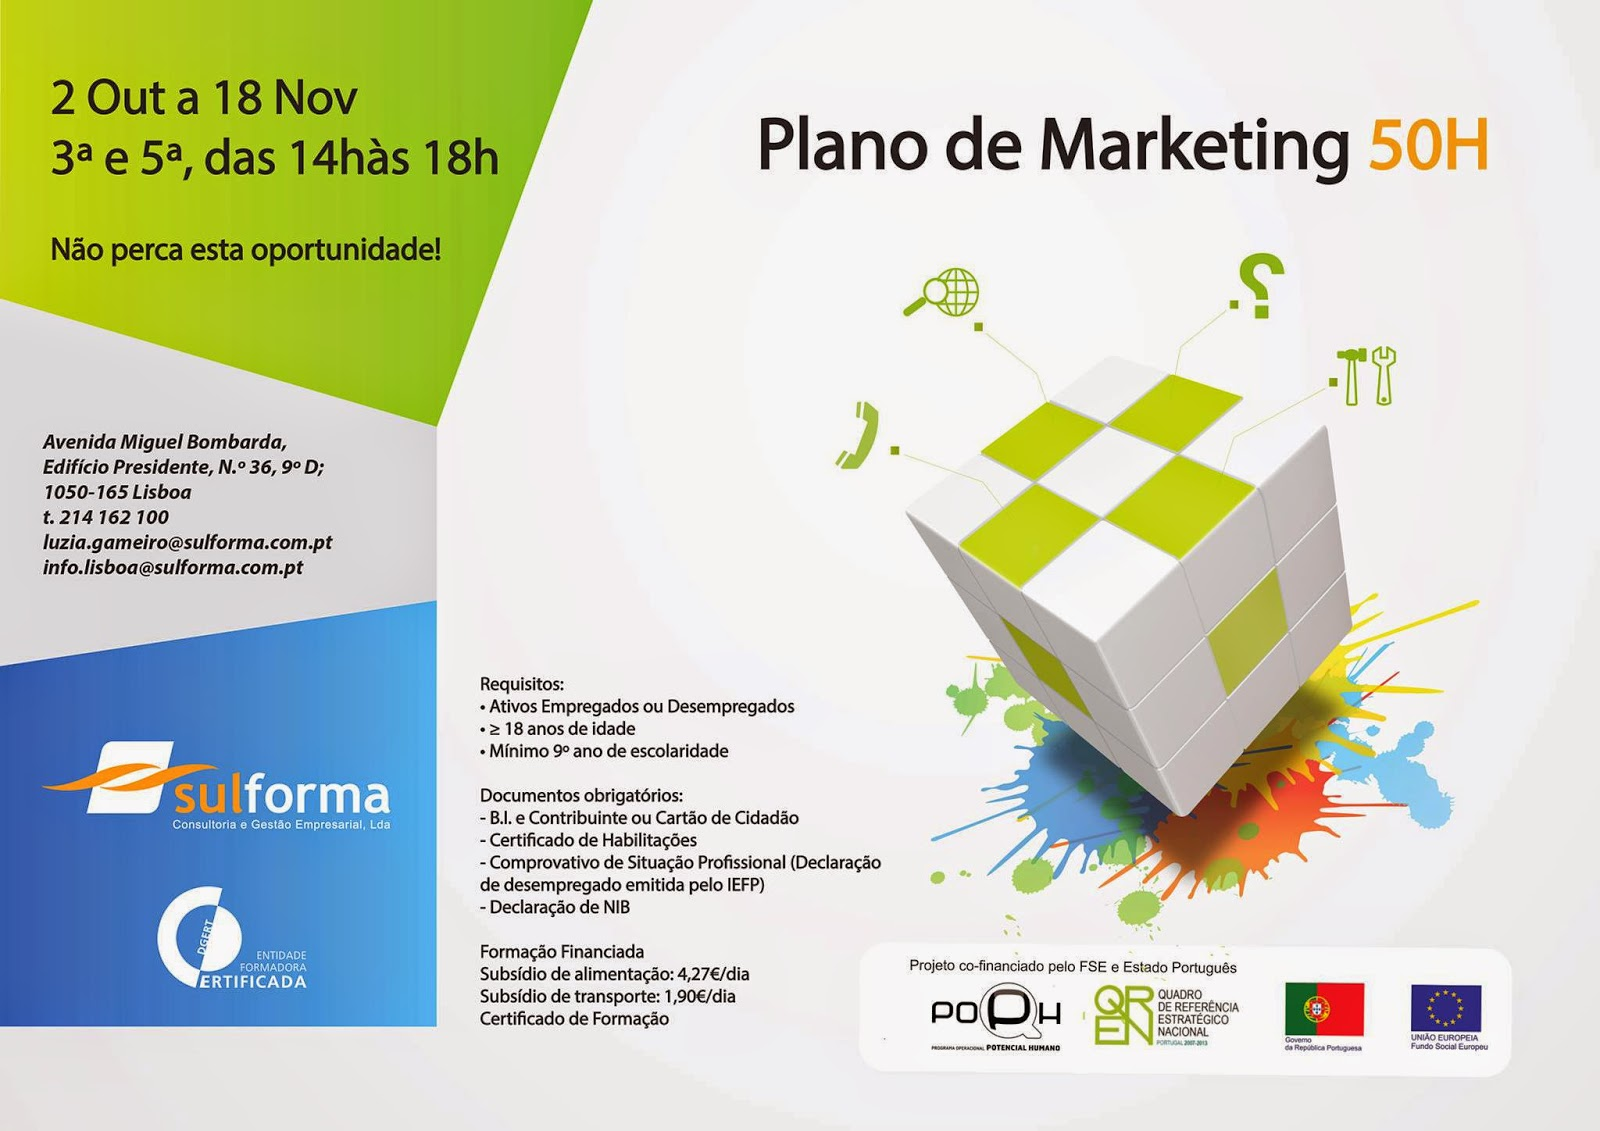 curso financiado plano de marketing Lisboa